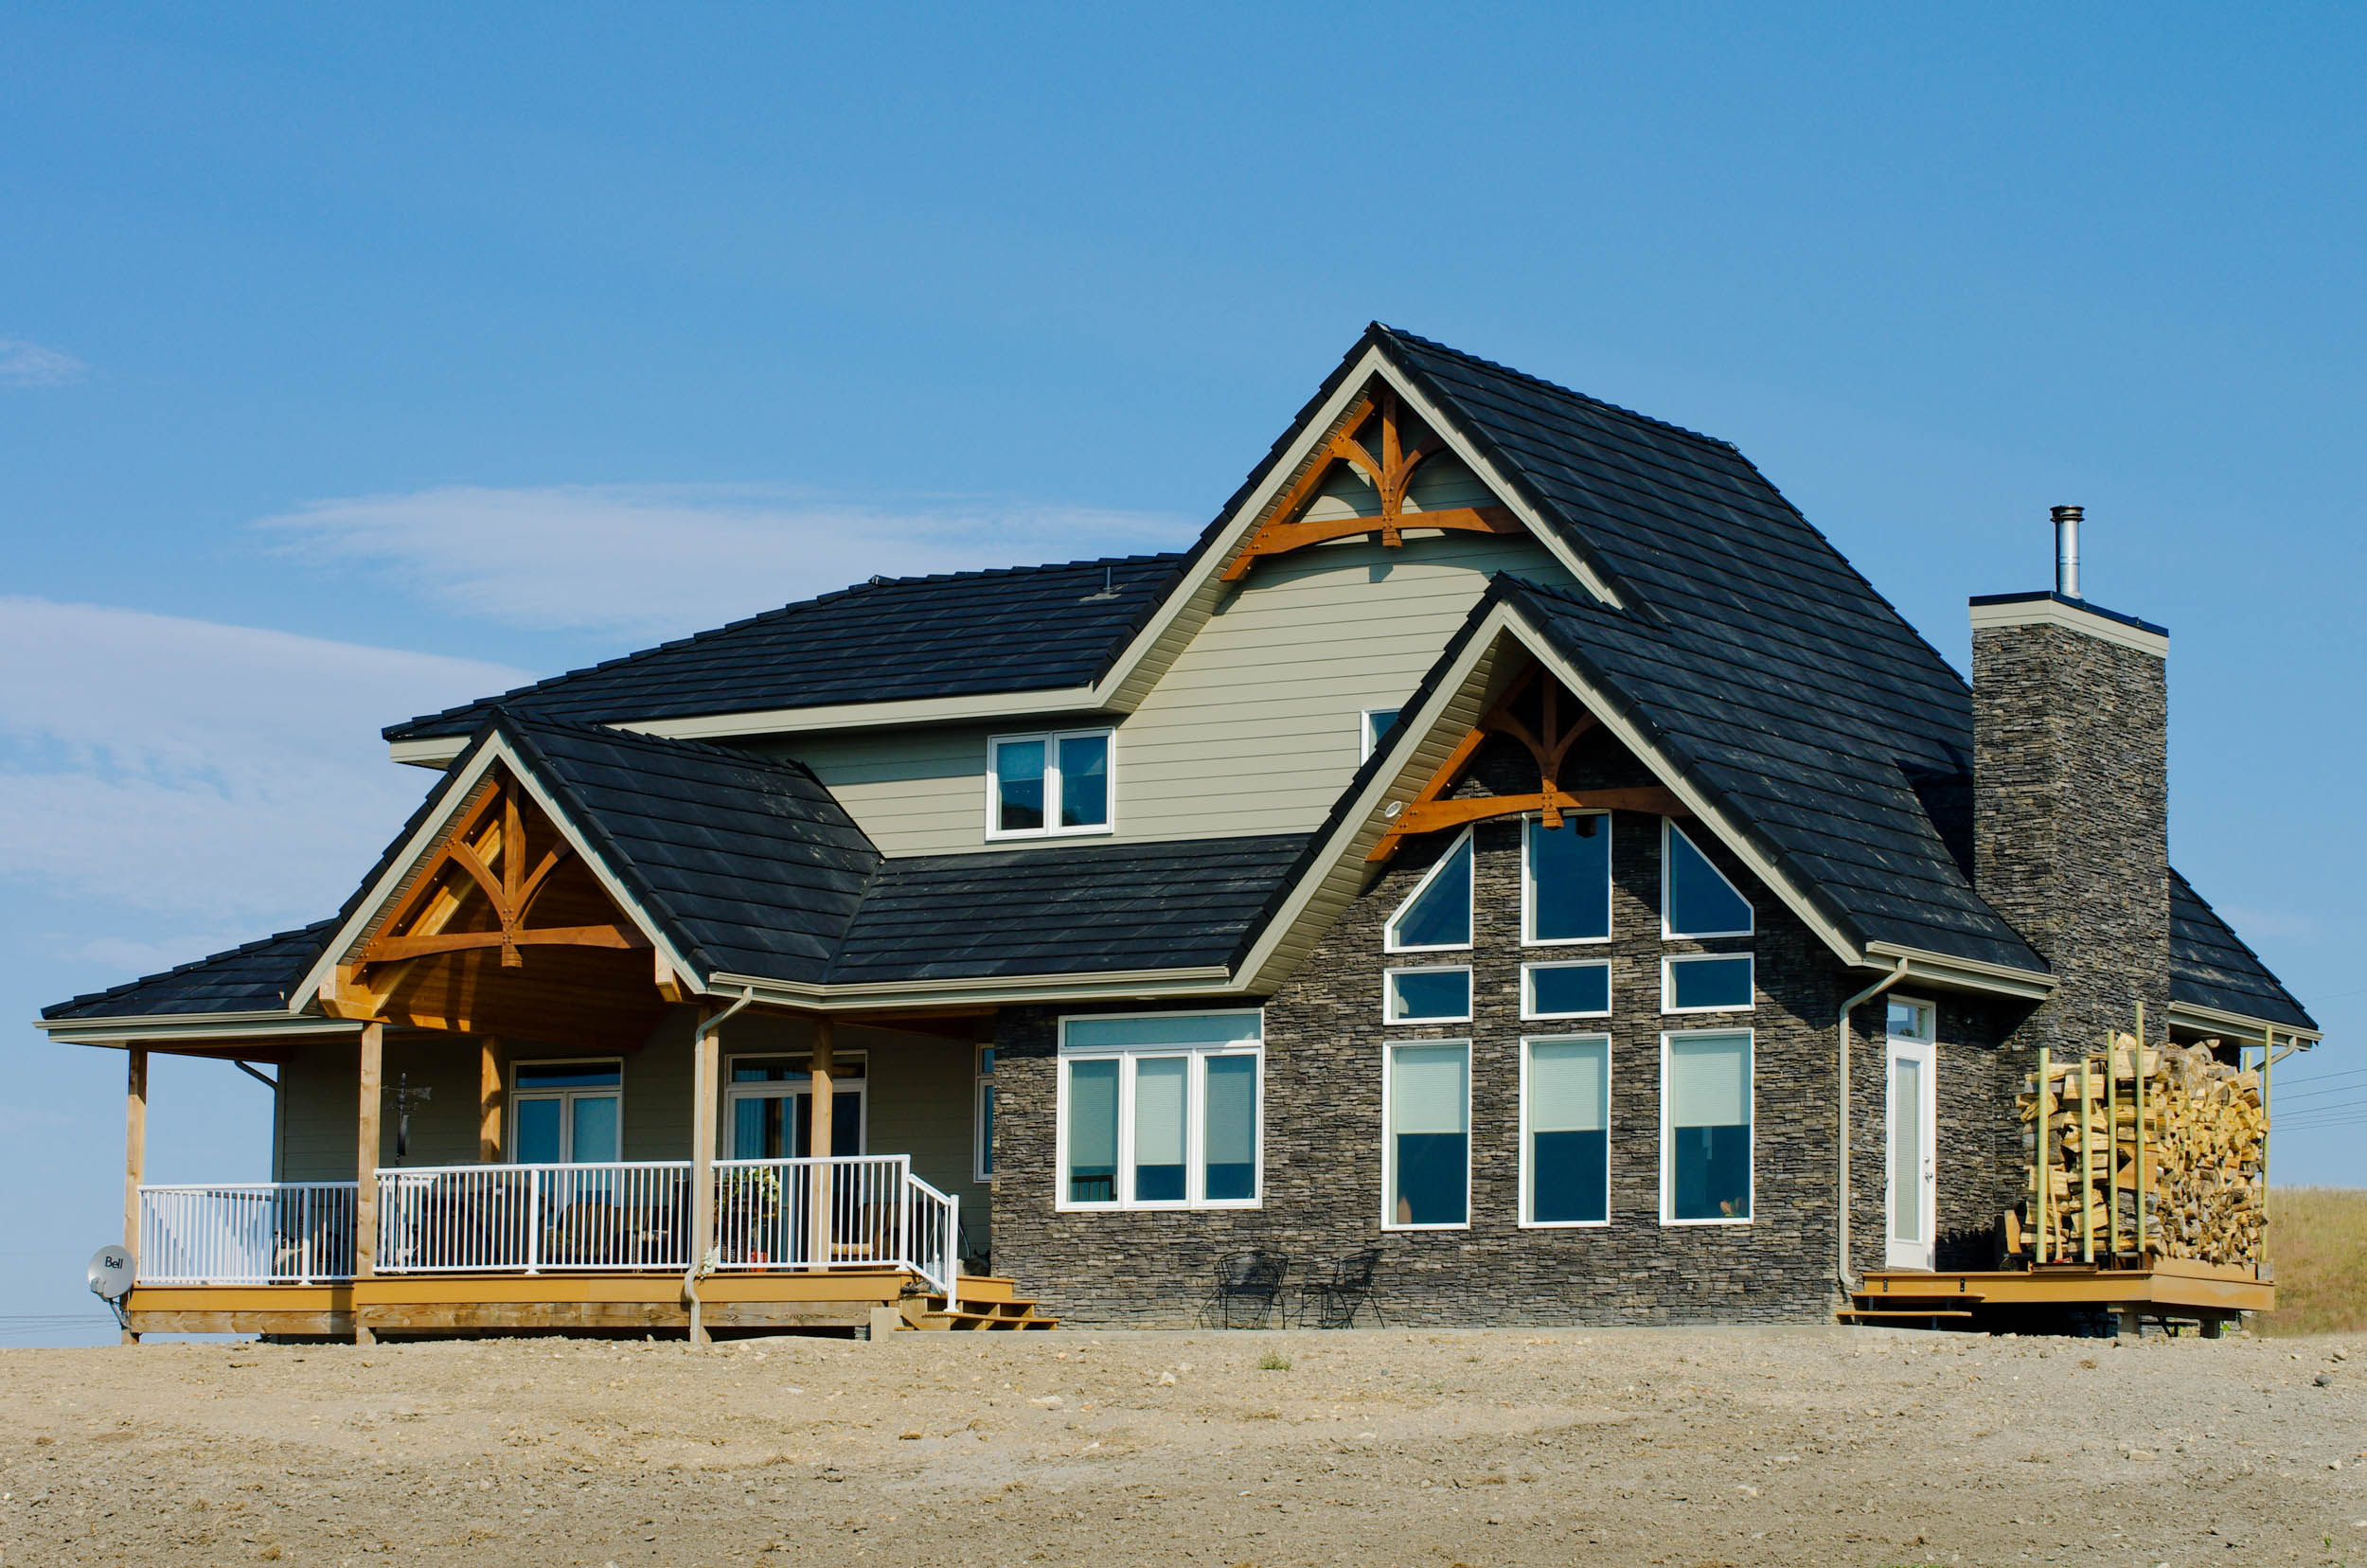 Saskatchewan custom home design jaywest country homes for Custom home designs online